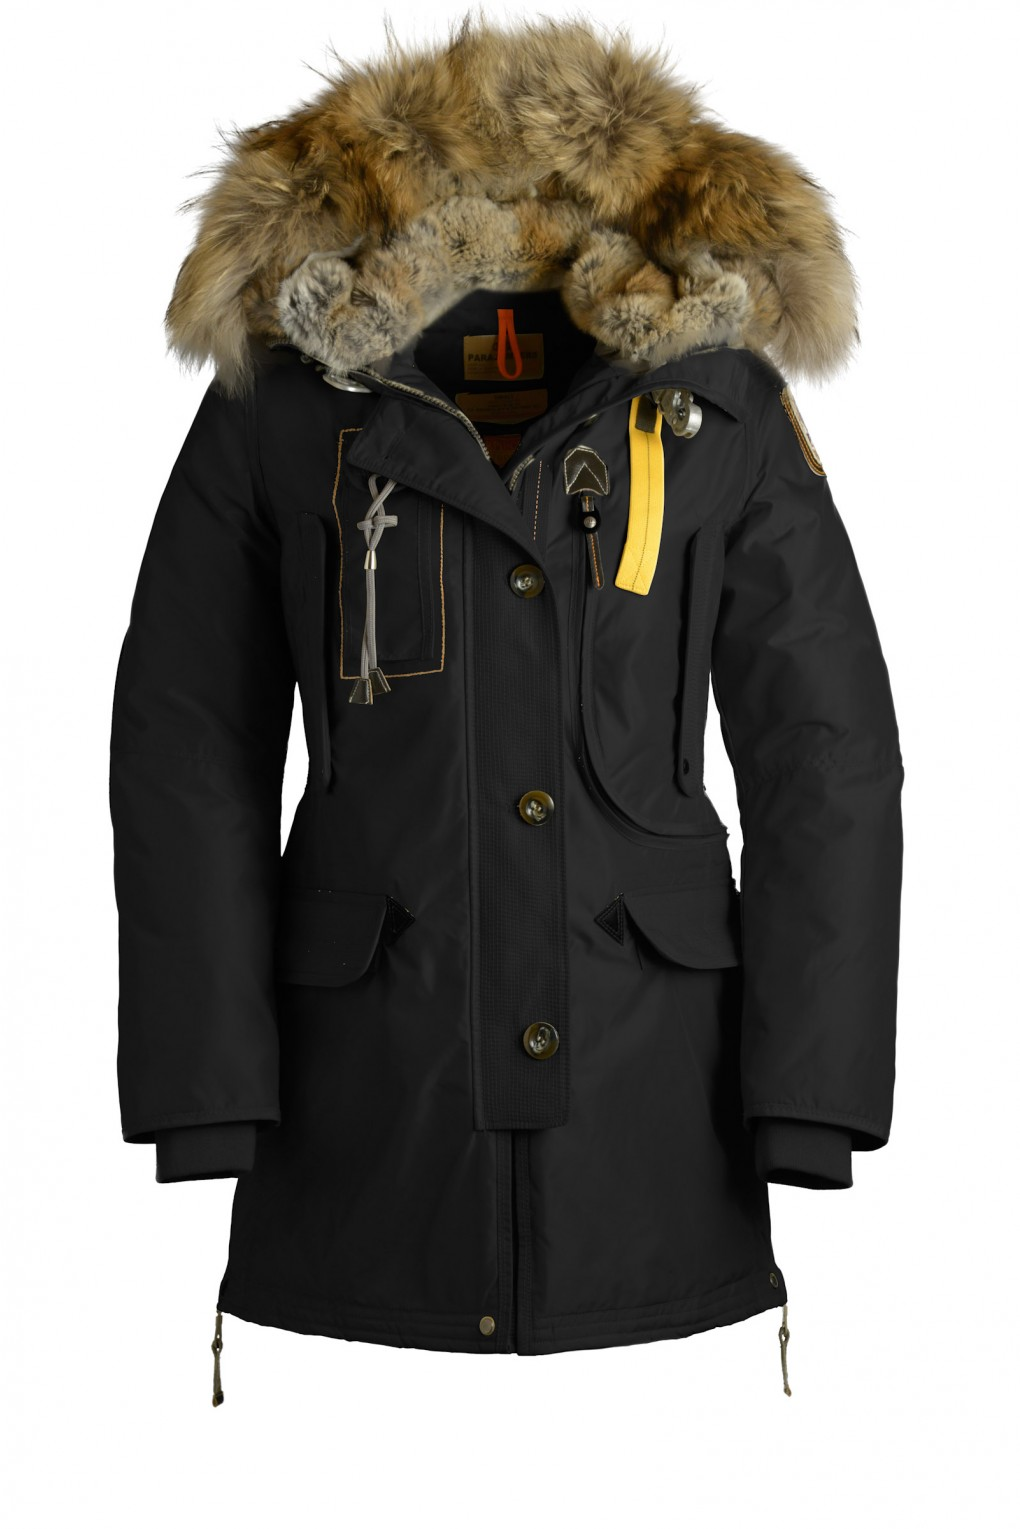 parajumpers KODIAK woman outerwear Black